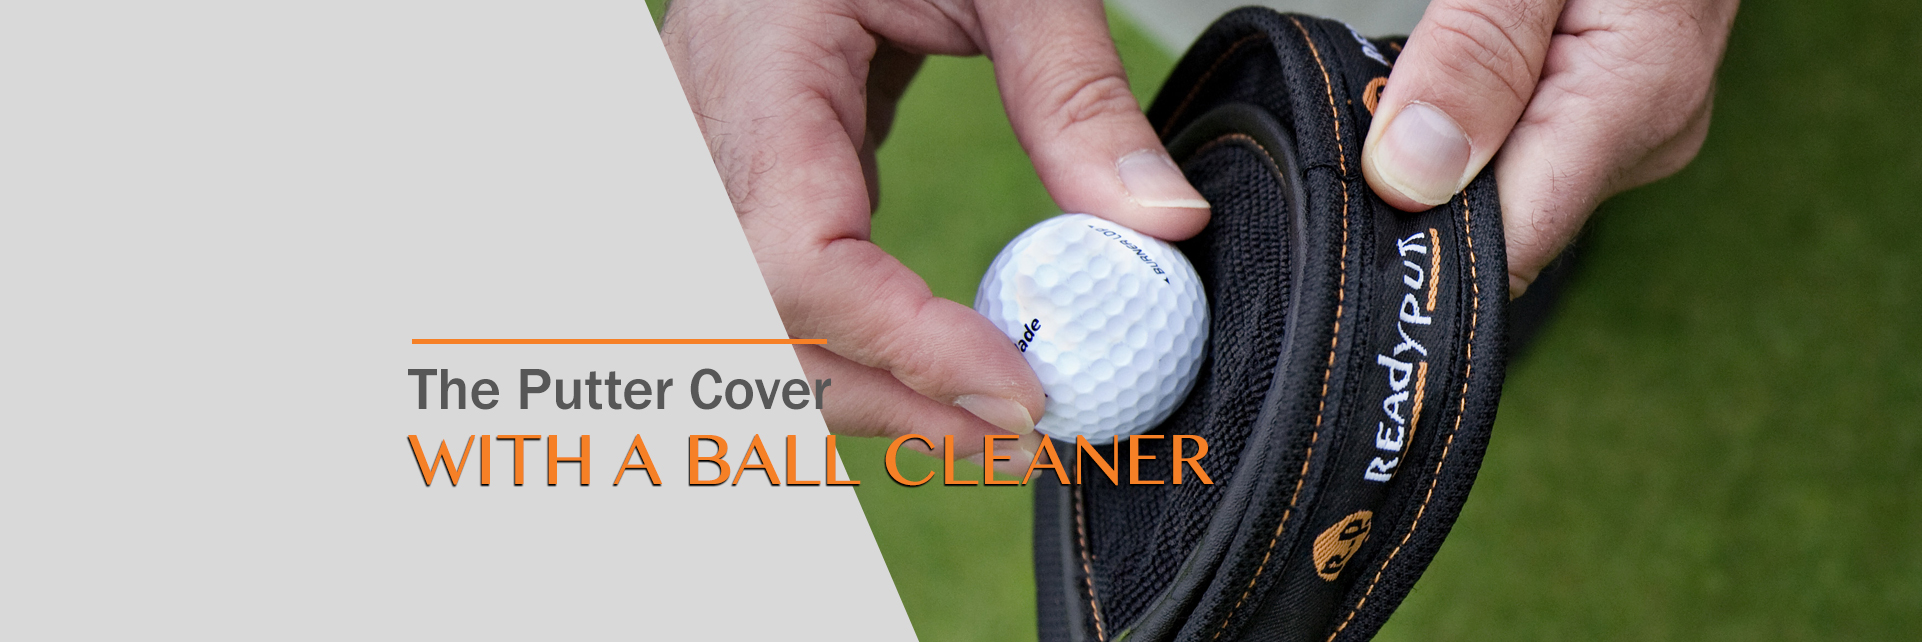 The Putter Cover With A Ball Cleaner